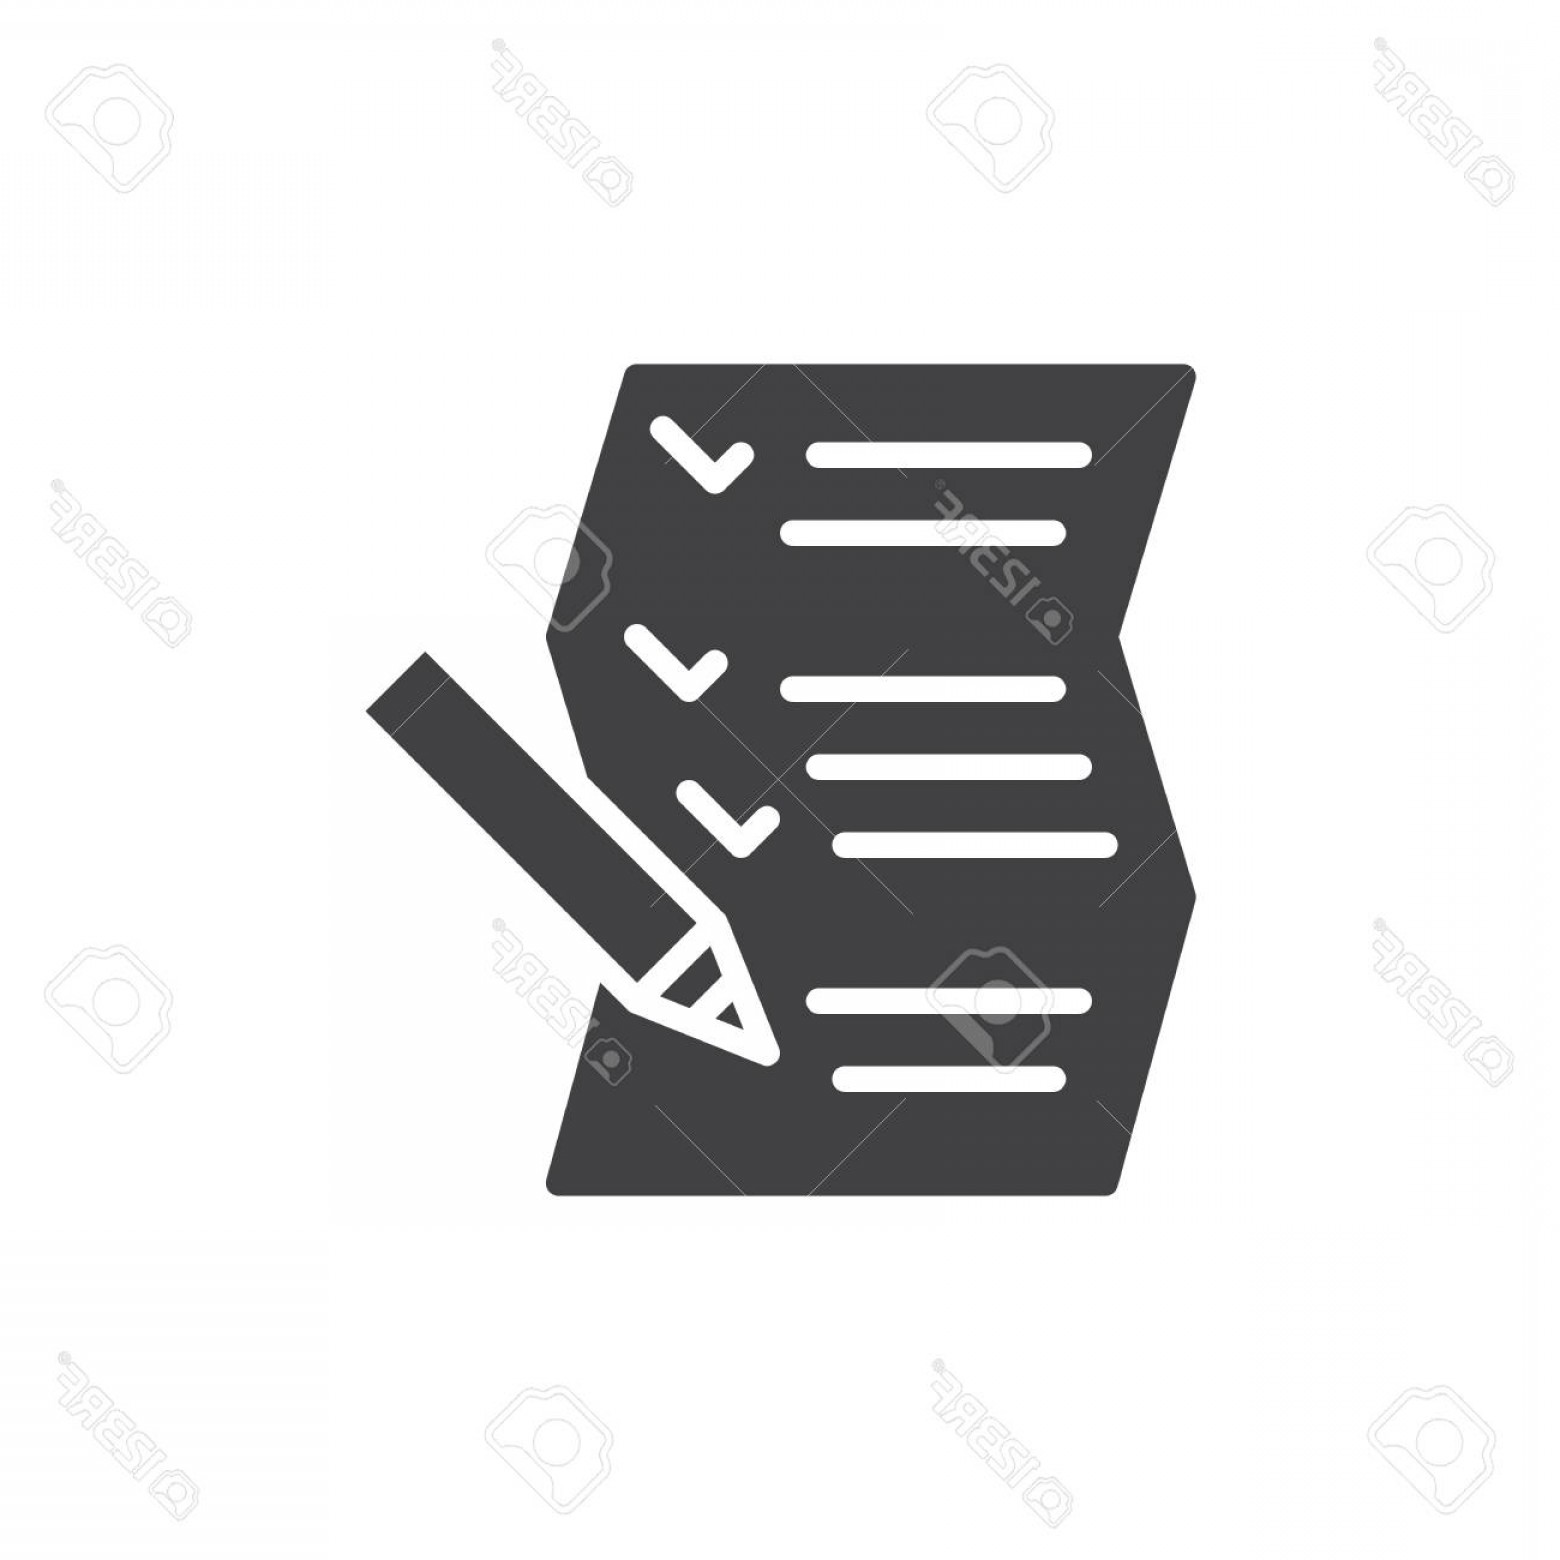 Paper And Pencil Icon Vector: Photostock Vector List Paper And Pencil Icon Vector Filled Flat Sign Solid Pictogram Isolated On White Symbol Logo Ill